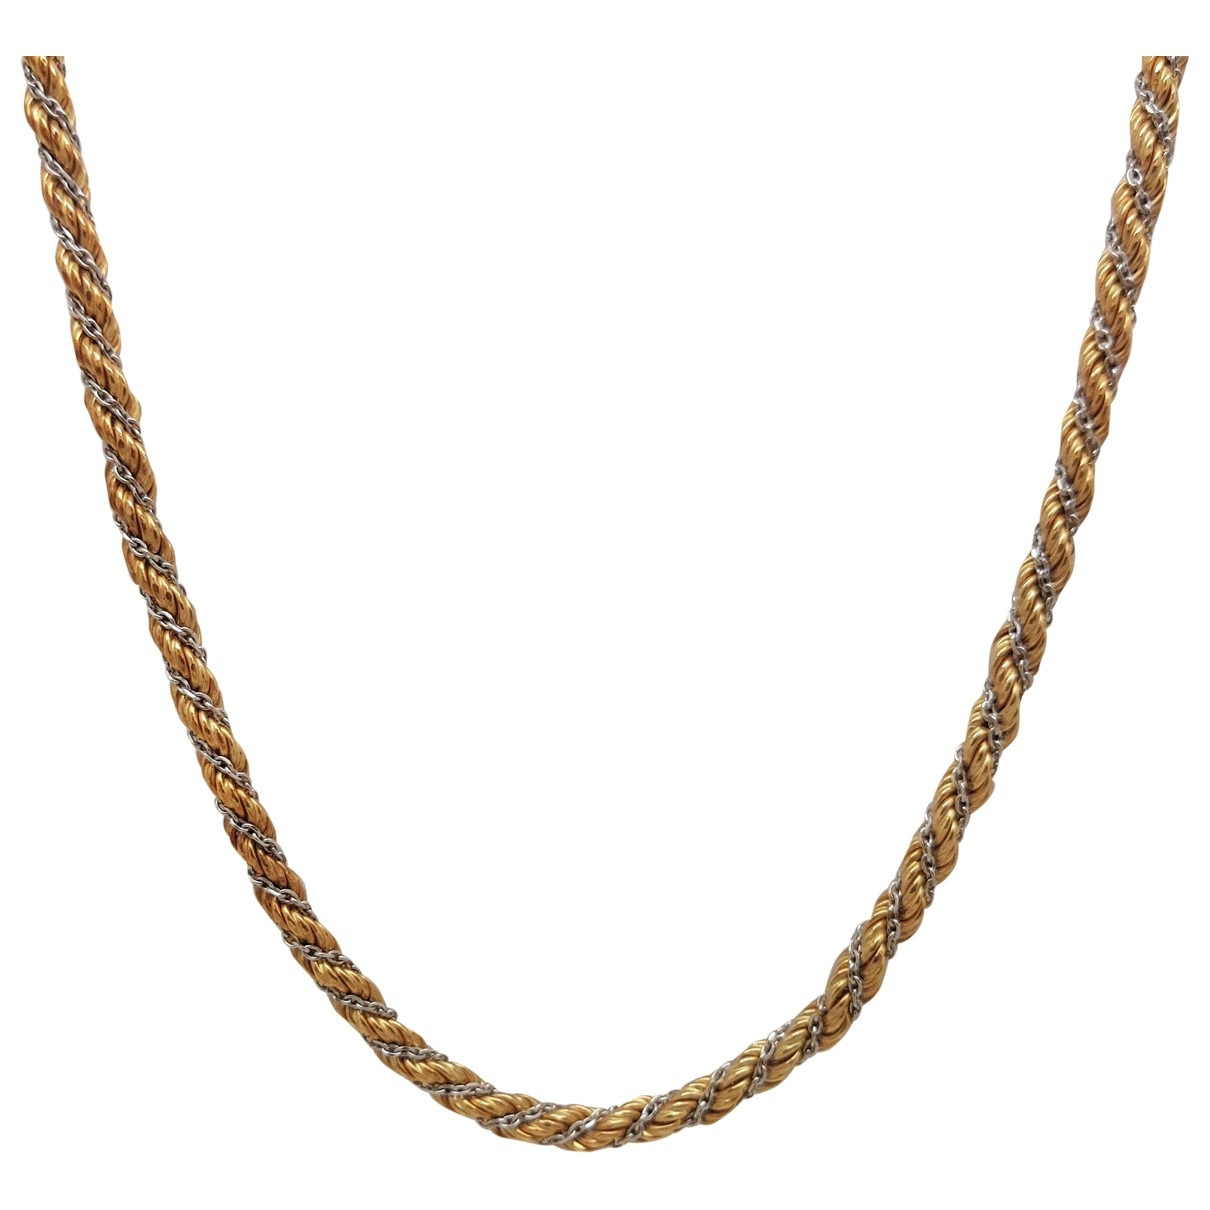 Non Signe / Unsigned Chaines Kette in  Gelb Gelbgold